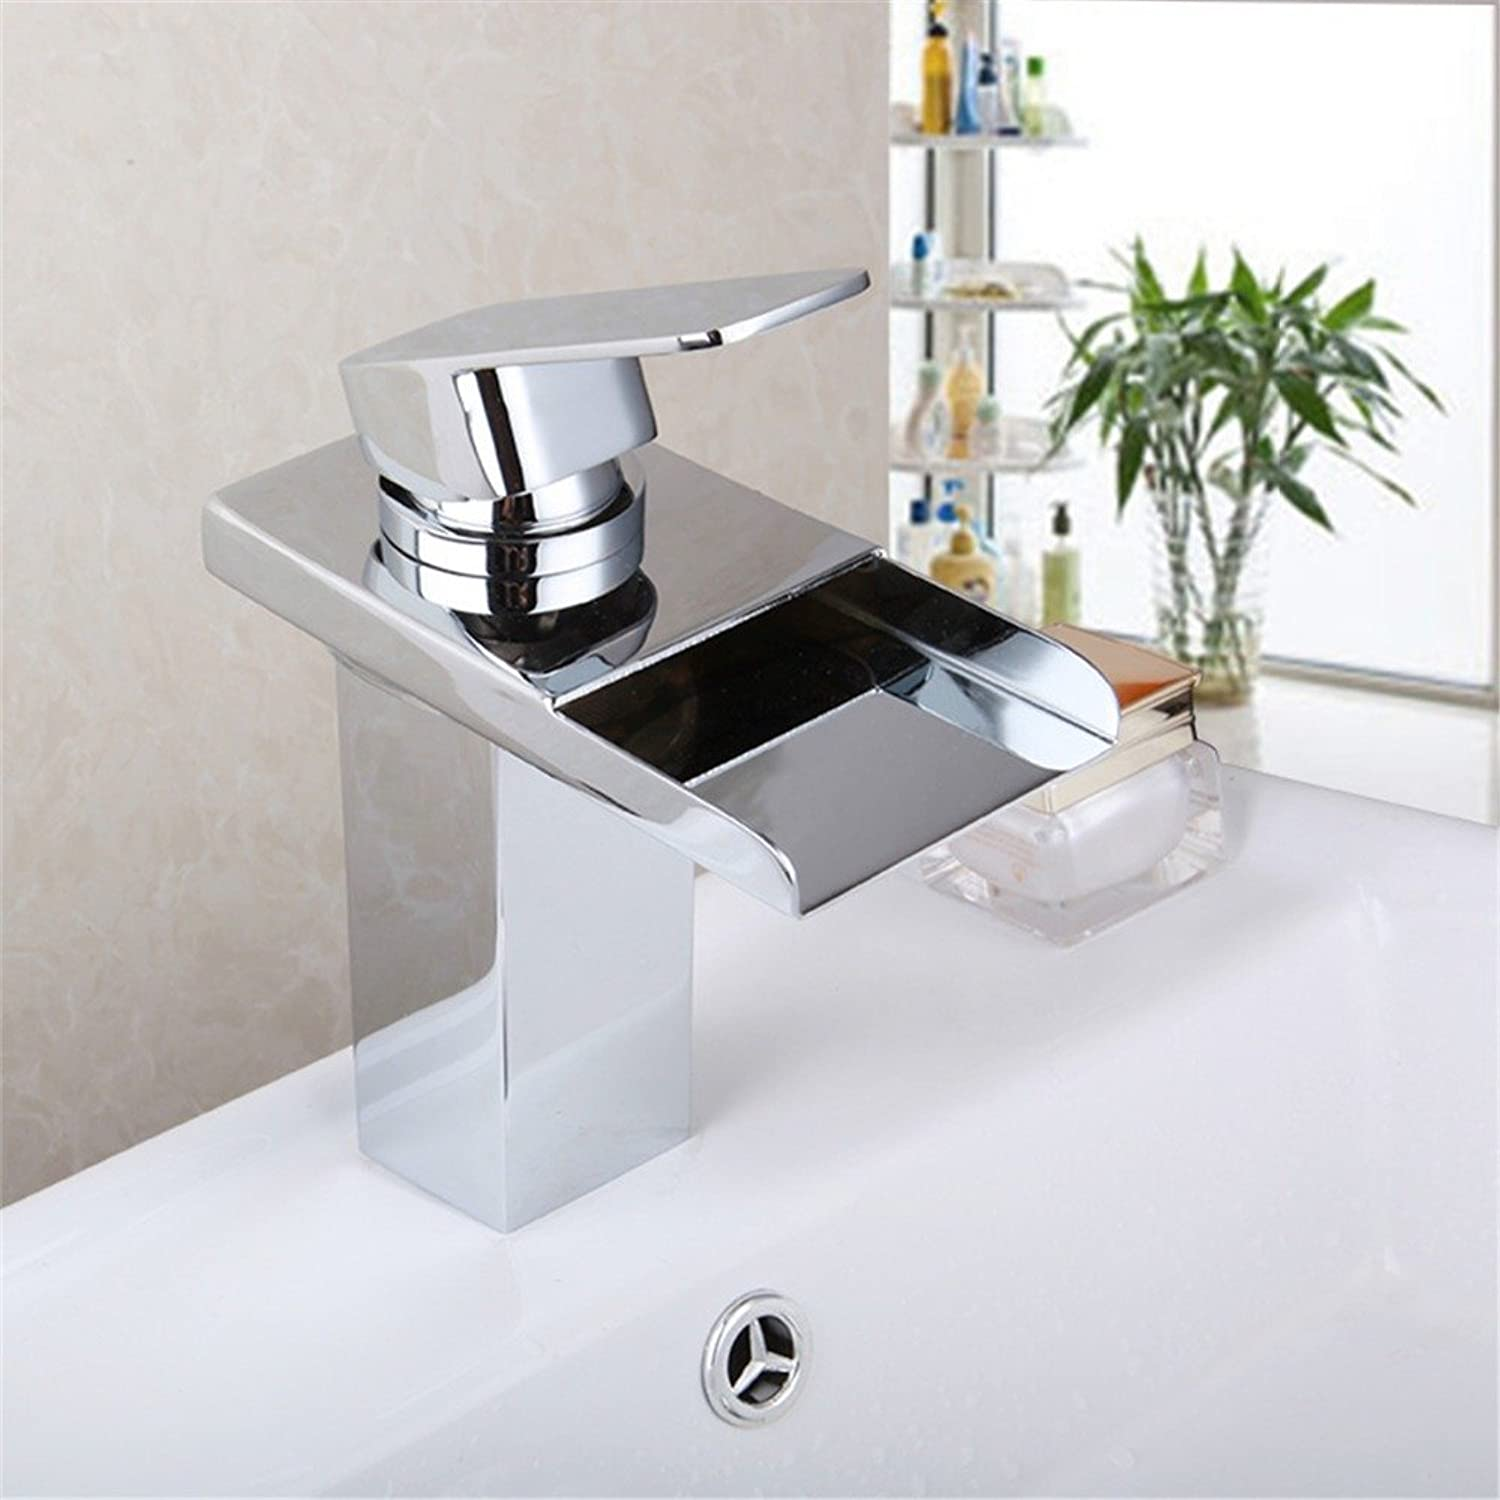 Tourmeler Newest Led Faucet Bathroom Basin Faucet Brass Chromed Led Waterfall Taps Water Power Basin Led Mixer Deck Mounted